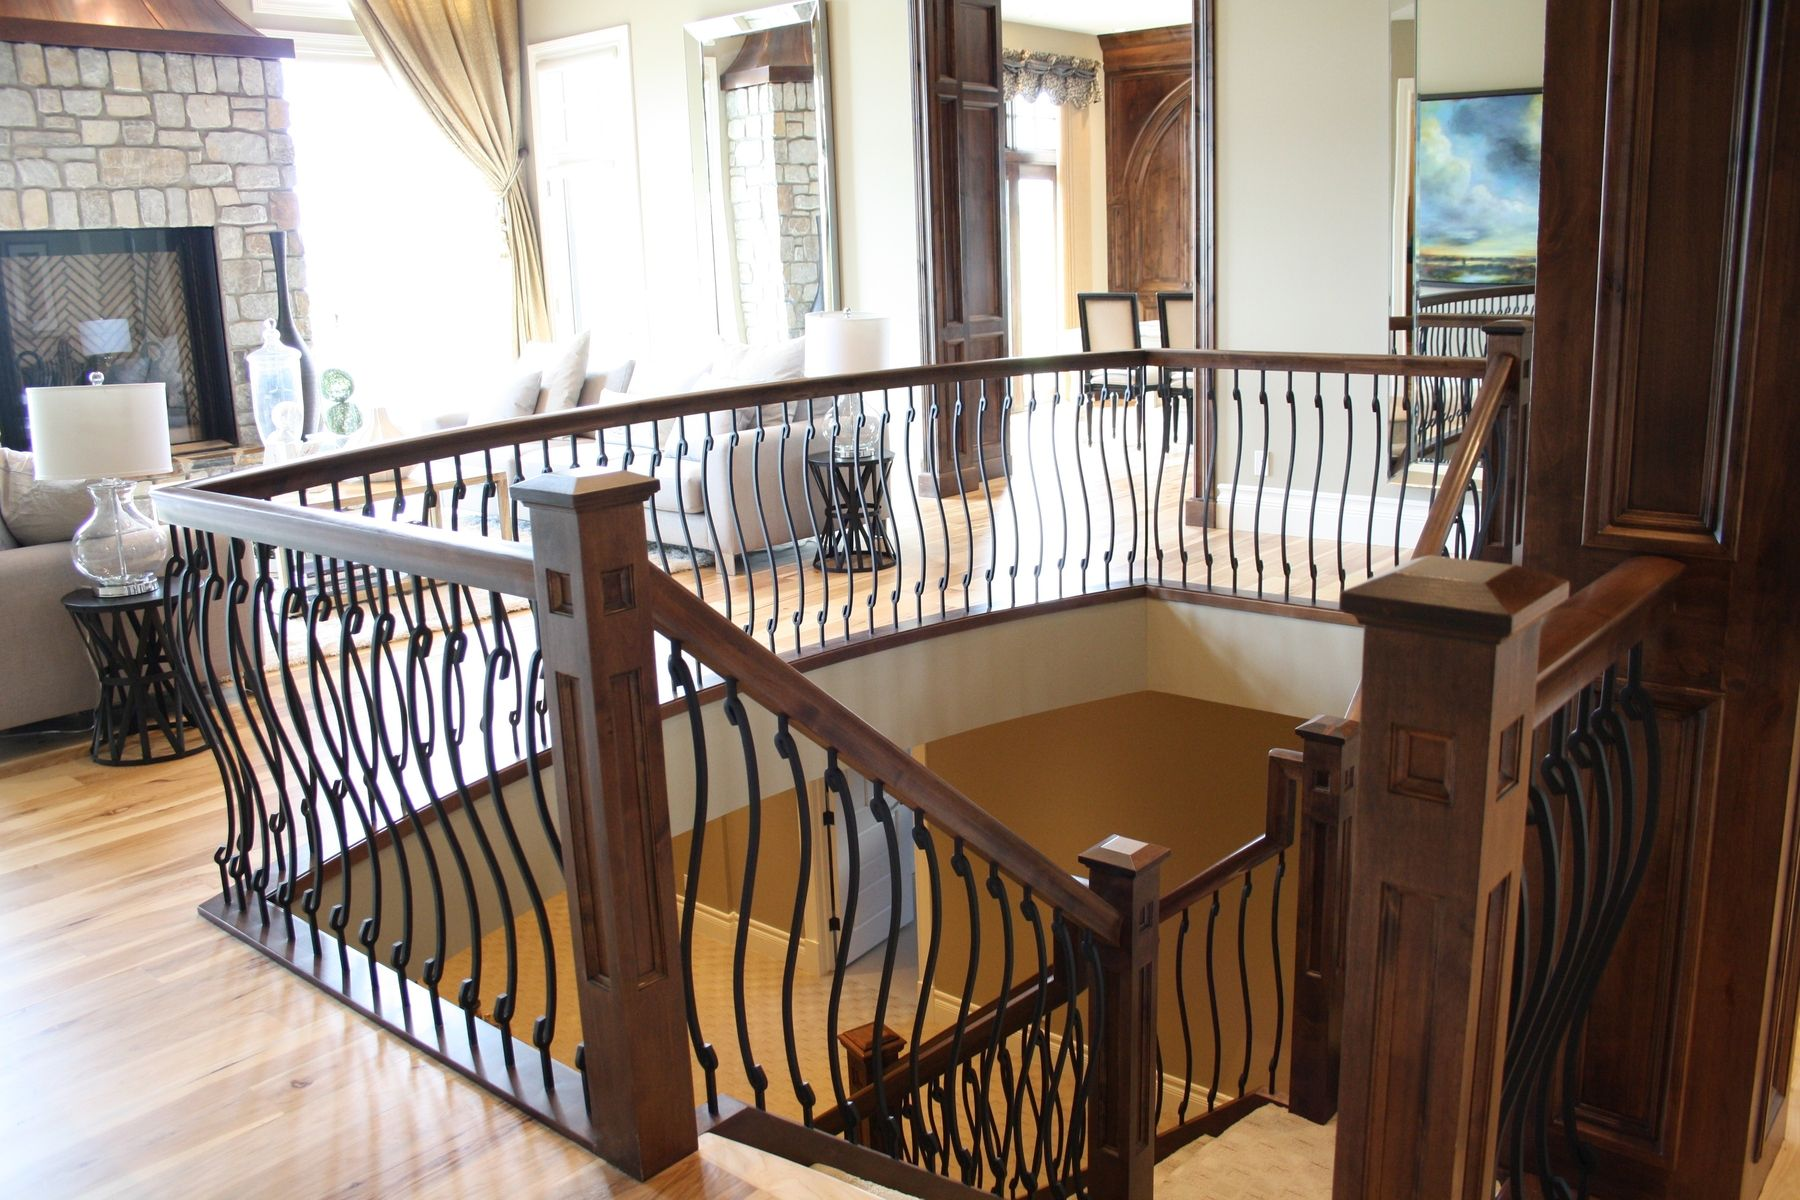 Custom Stair Railing Custom Made Wood Stair Rail With S Shaped Spindles By Prestige